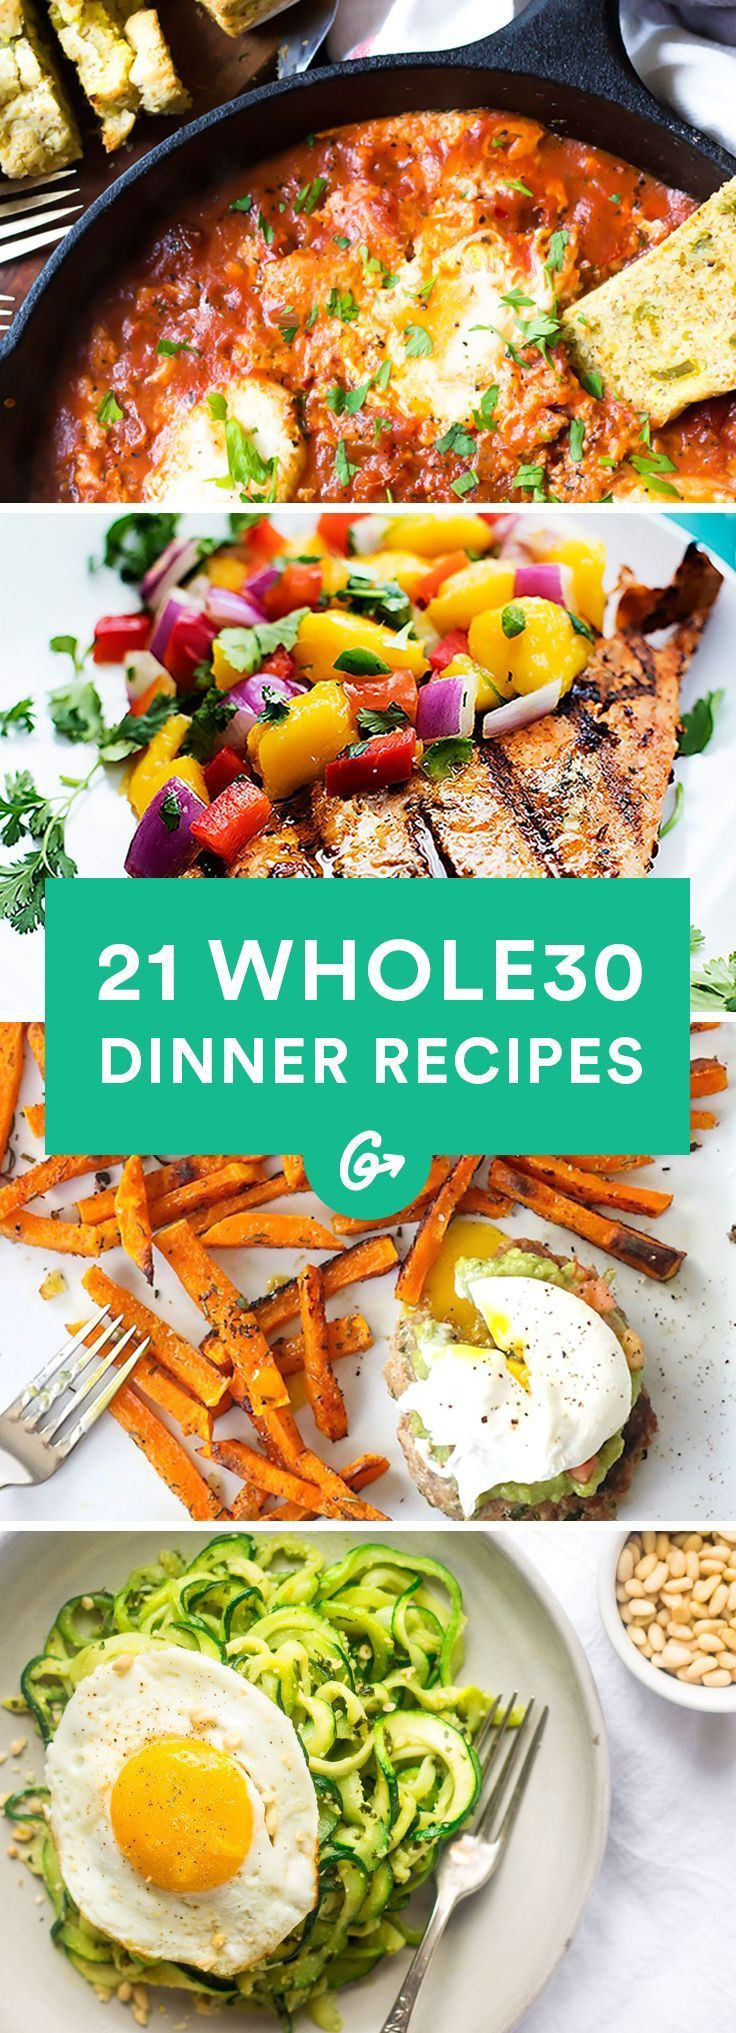 Whole 30 Dinner Recipes  21 Easy and Delicious Whole30 Dinner Recipes